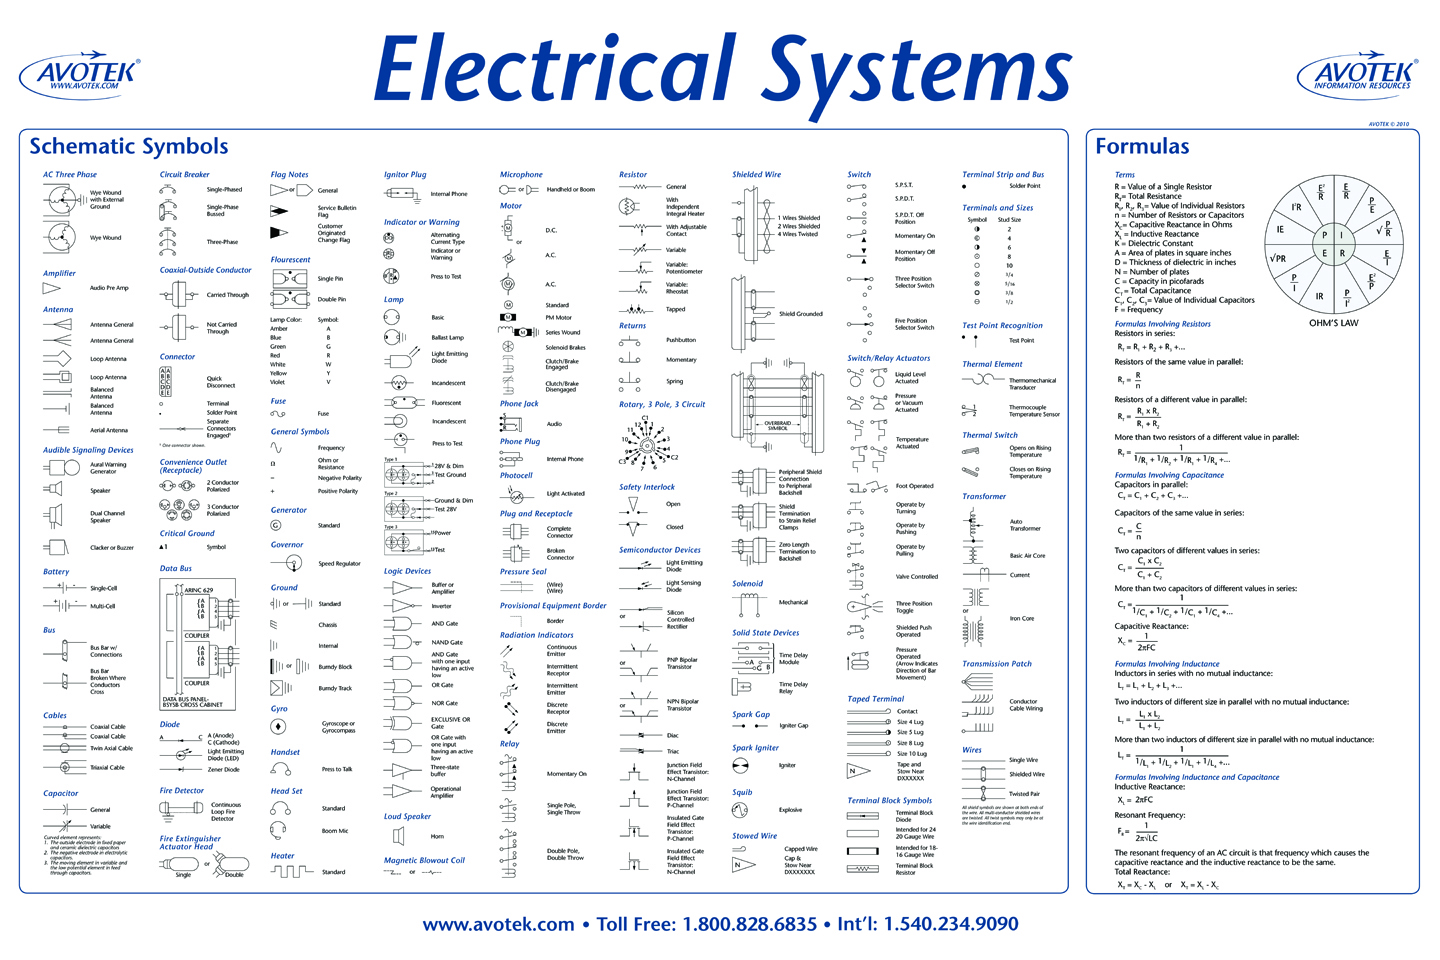 Classroom Poster Electrical Systems on 4 pole breaker with 3 phase